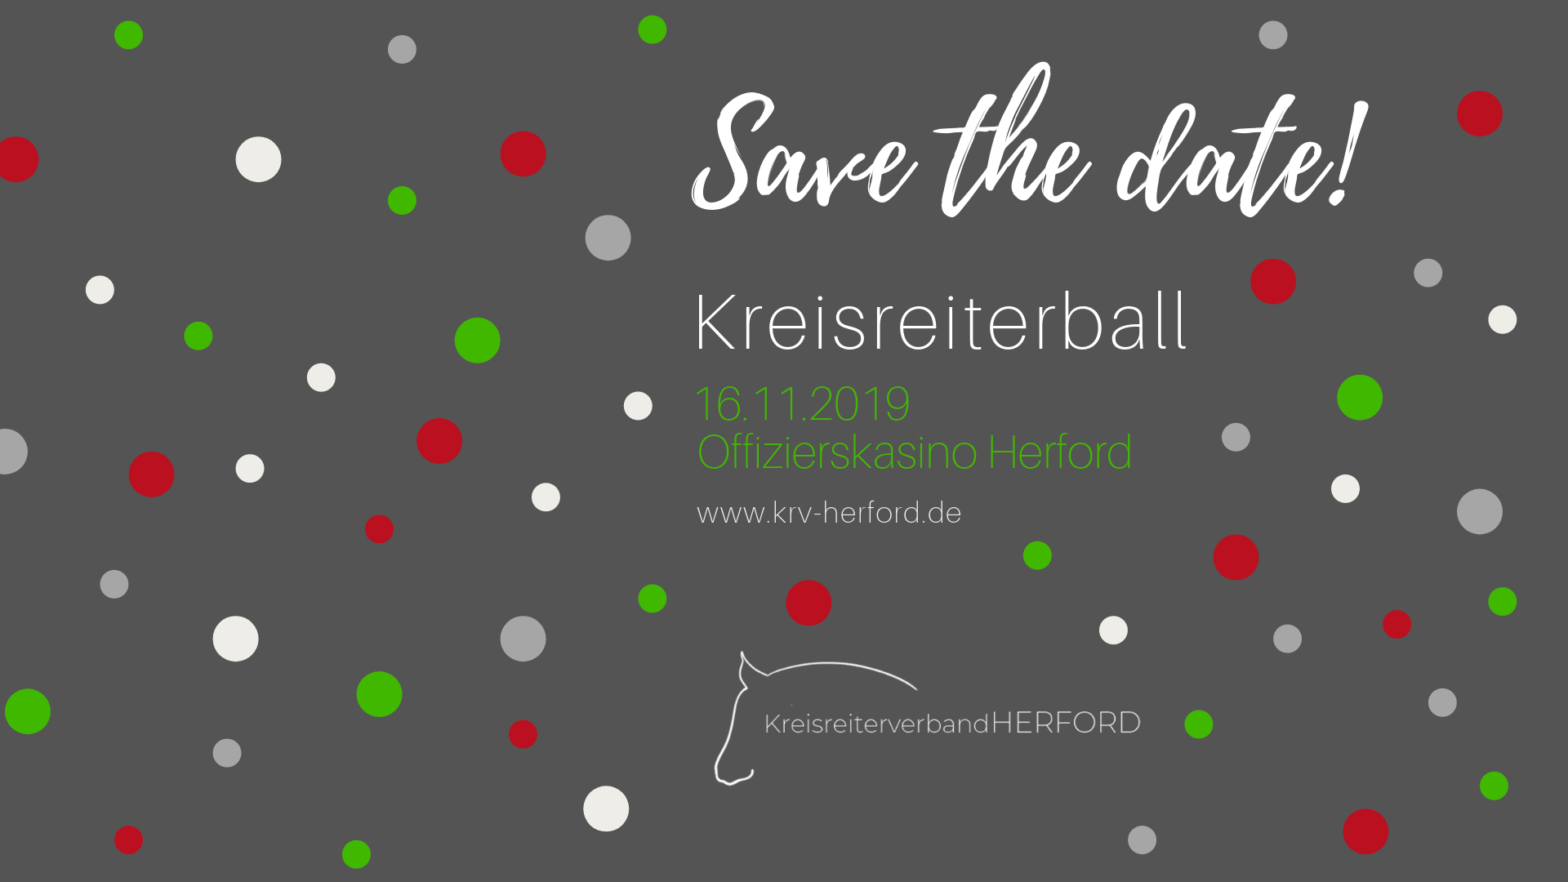 Save the date: Kreisreiterball am 16.11.2019